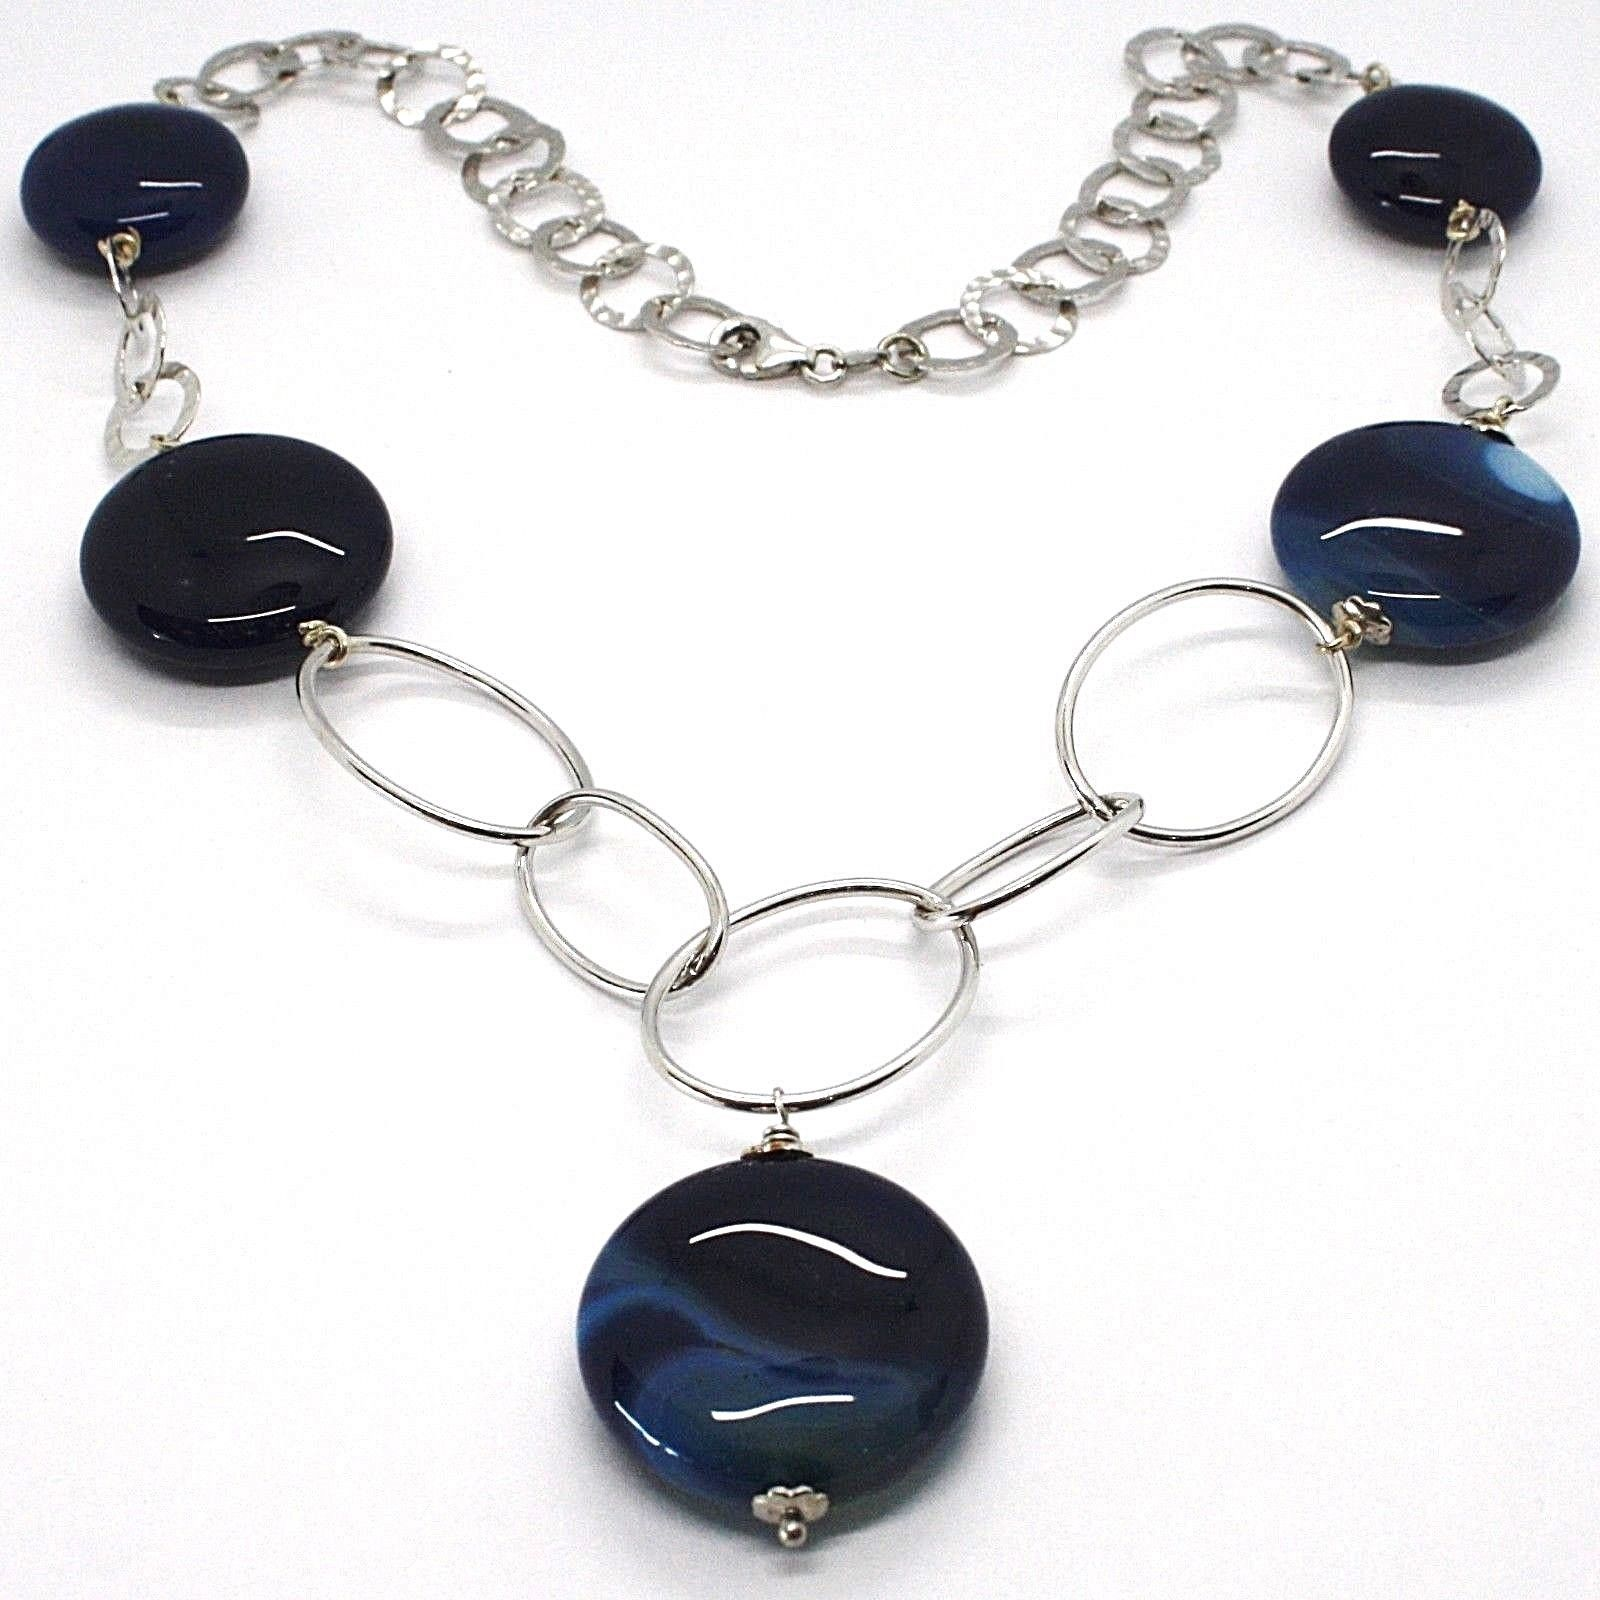 925 Silver Necklace, Agate Blue Striated, Disk, Pendant, Length 50 cm